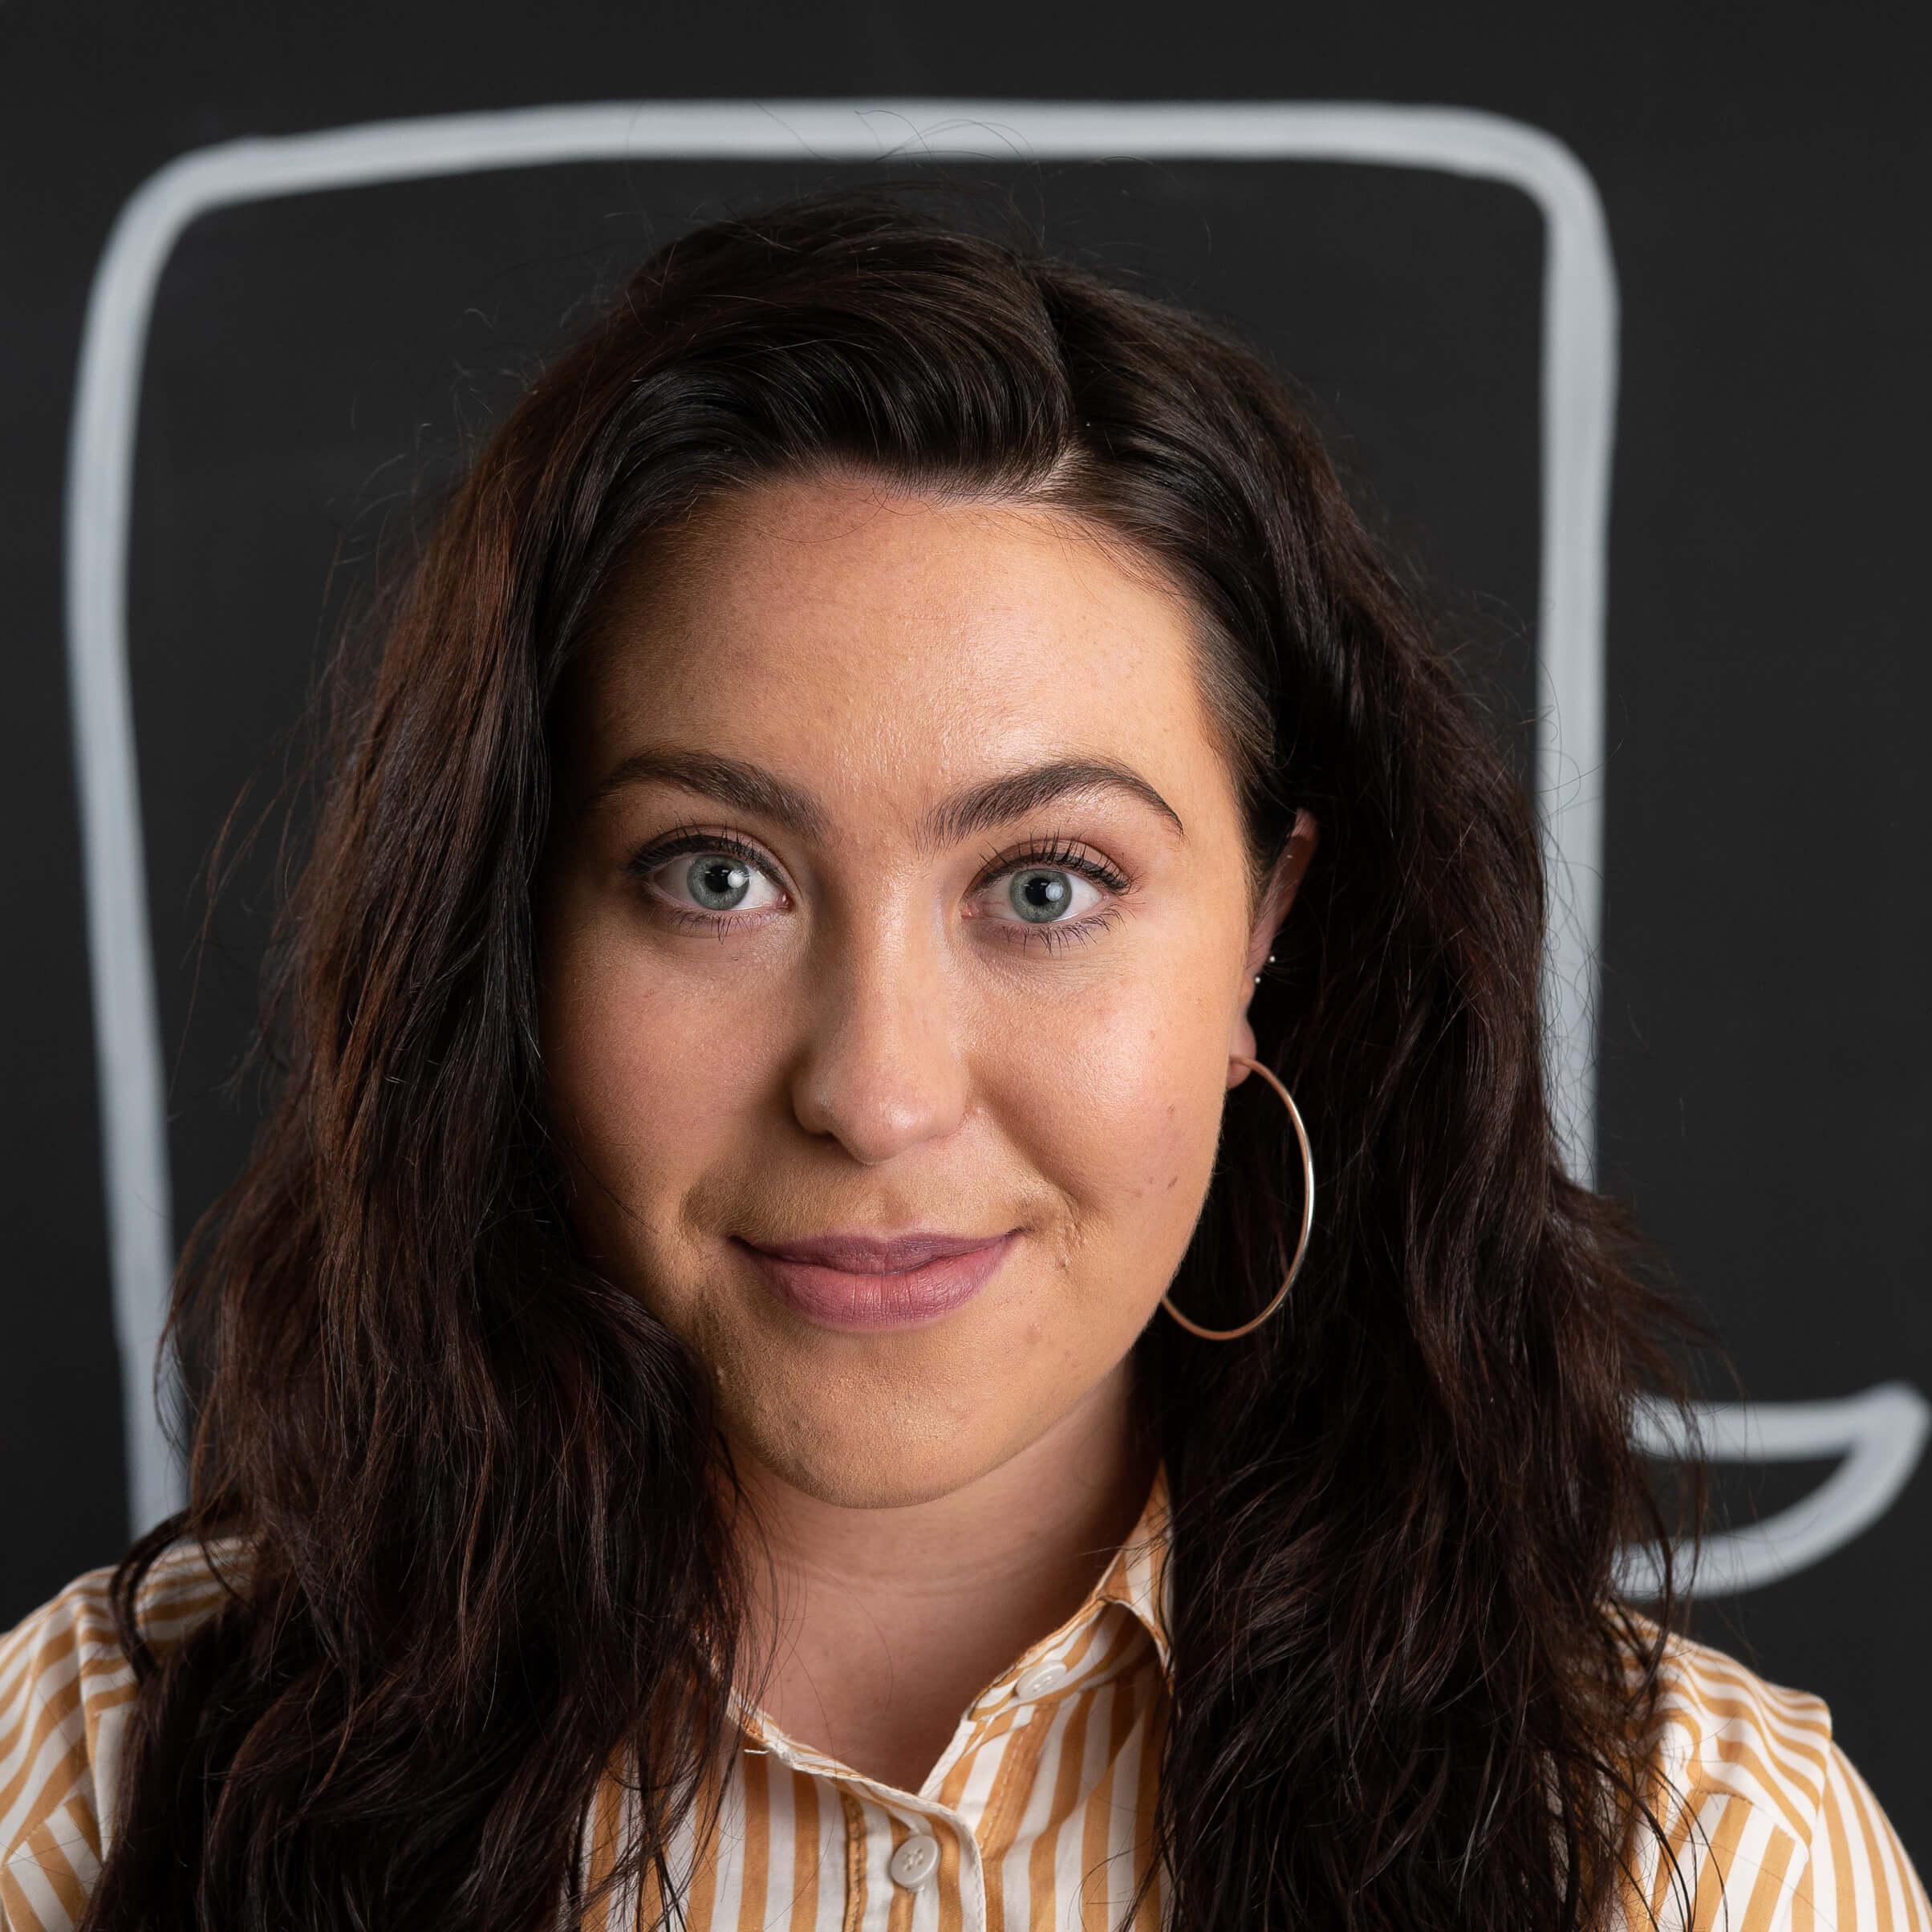 Becky    Business Development Executive   Foodie and culture vulture Becky swapped a career in theatre for the equally dramatic field of tech sales. If there's a new restaurant opening, she's likely to know about it before you do.